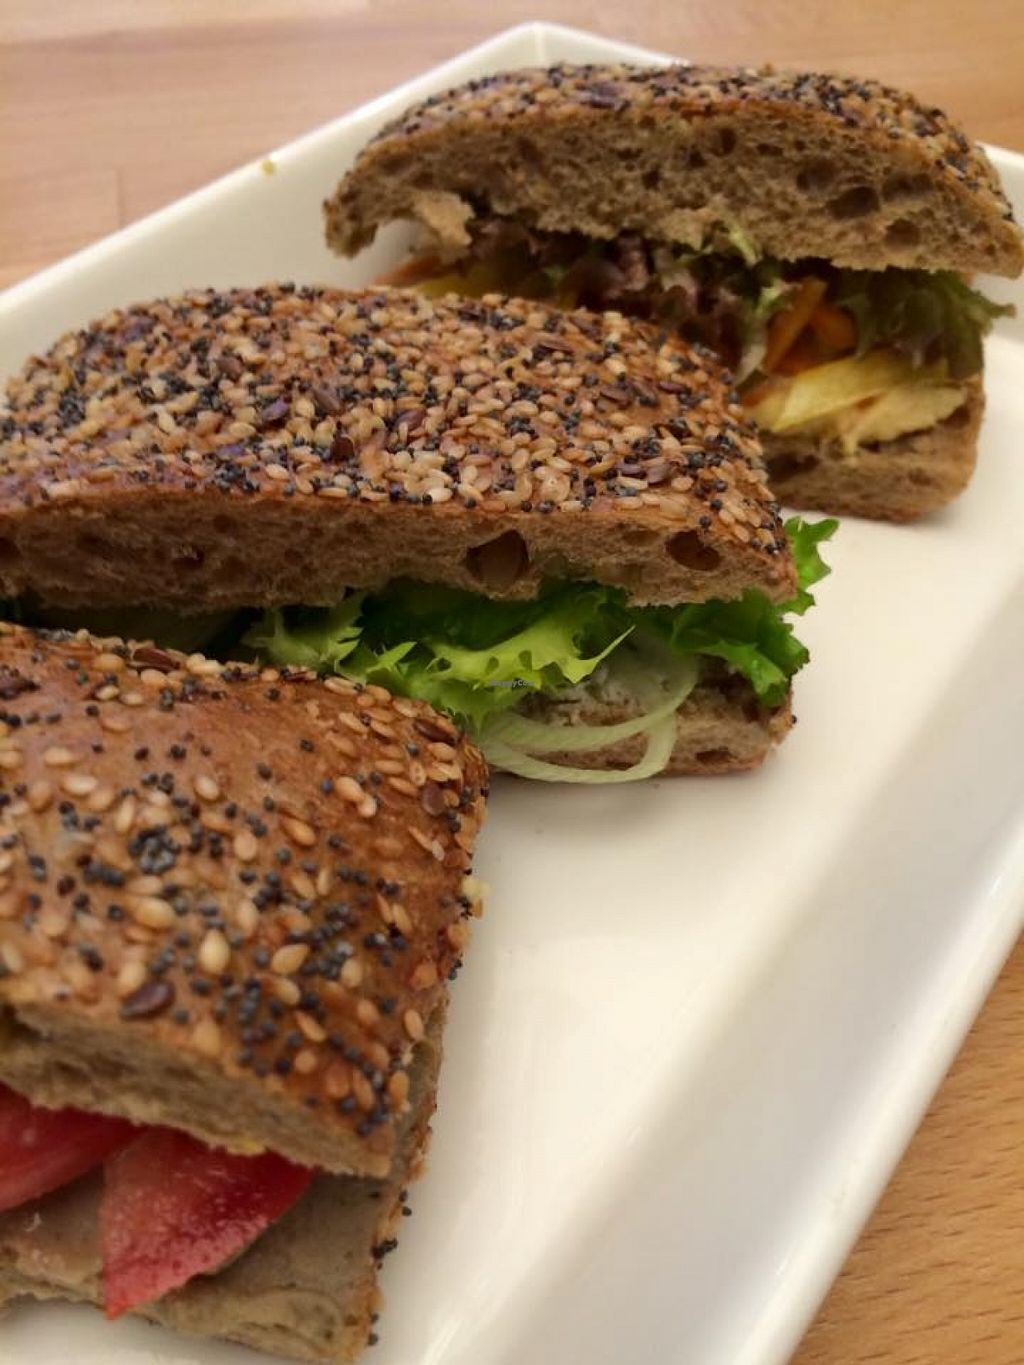 """Photo of Frisch & Veg  by <a href=""""/members/profile/community"""">community</a> <br/>veggie sandwiches  <br/> December 3, 2015  - <a href='/contact/abuse/image/66064/126989'>Report</a>"""